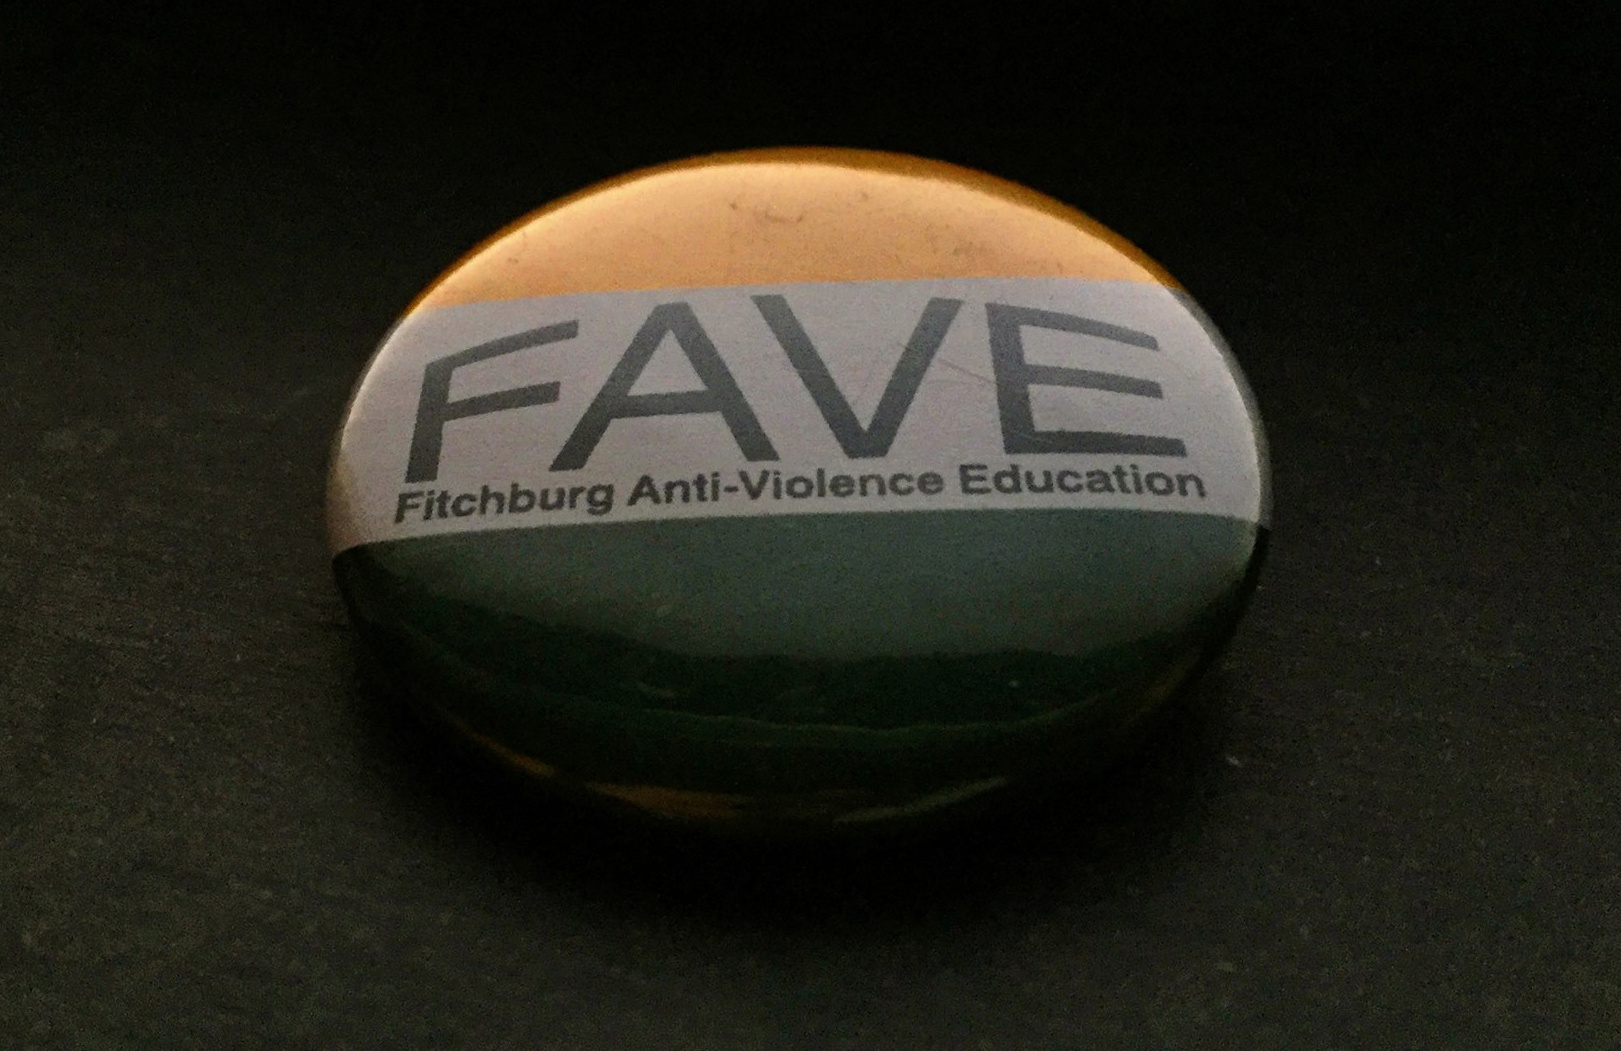 The logo for our Fitchburg Anti-Violence Education program